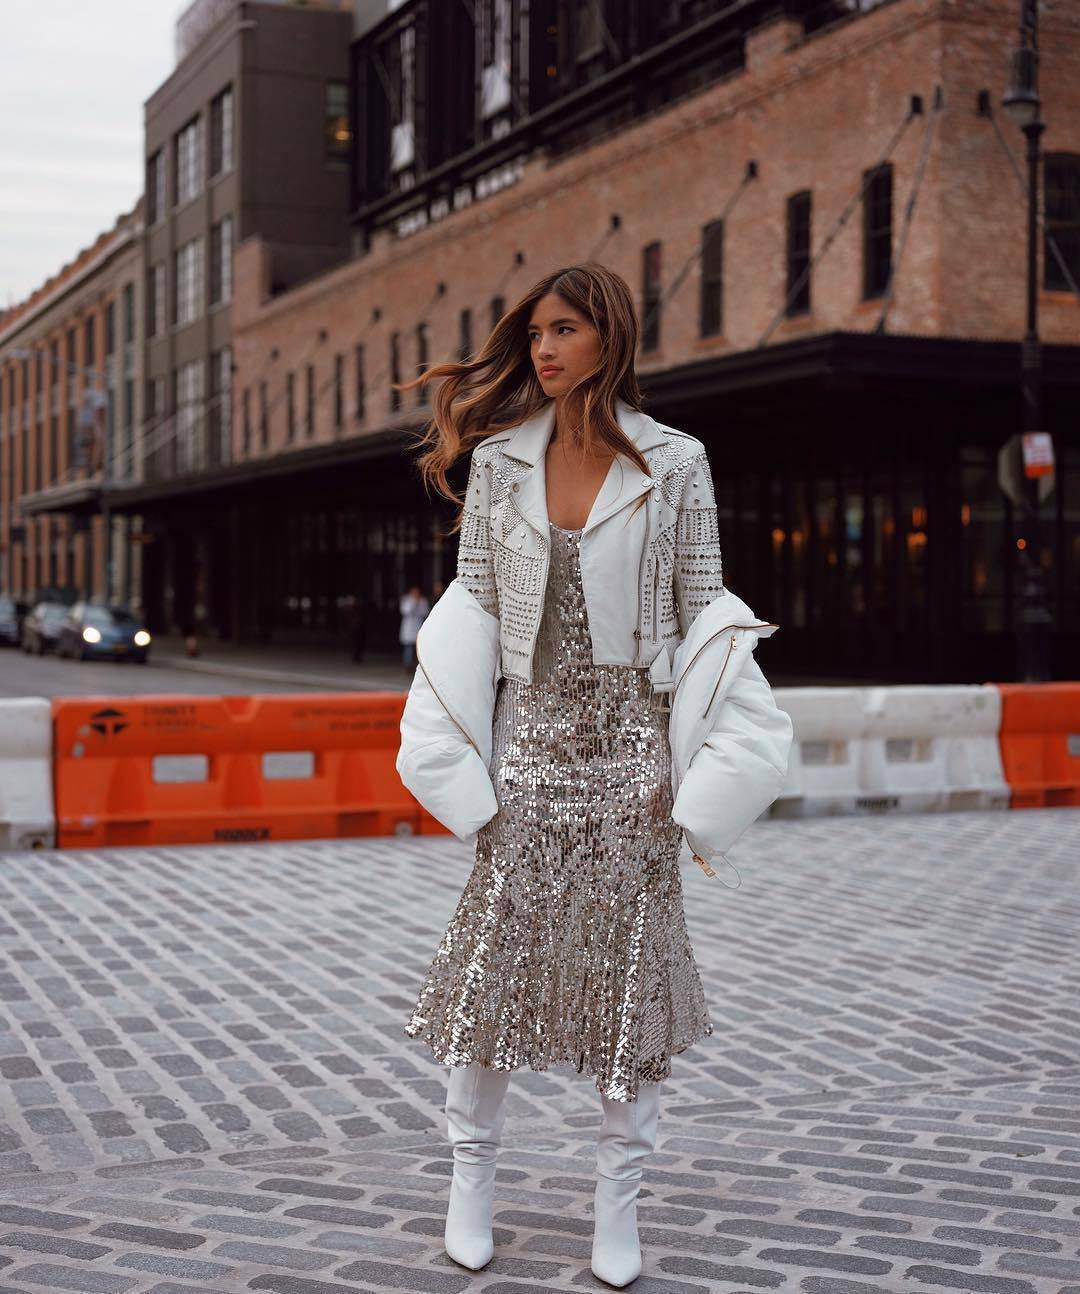 dress sequin dress midi skirt silver dress white boots heel boots knee high boots white jacket grey jacket leather jacket sequins rocky barnes instagram blogger fashion week silver metallic midi dress